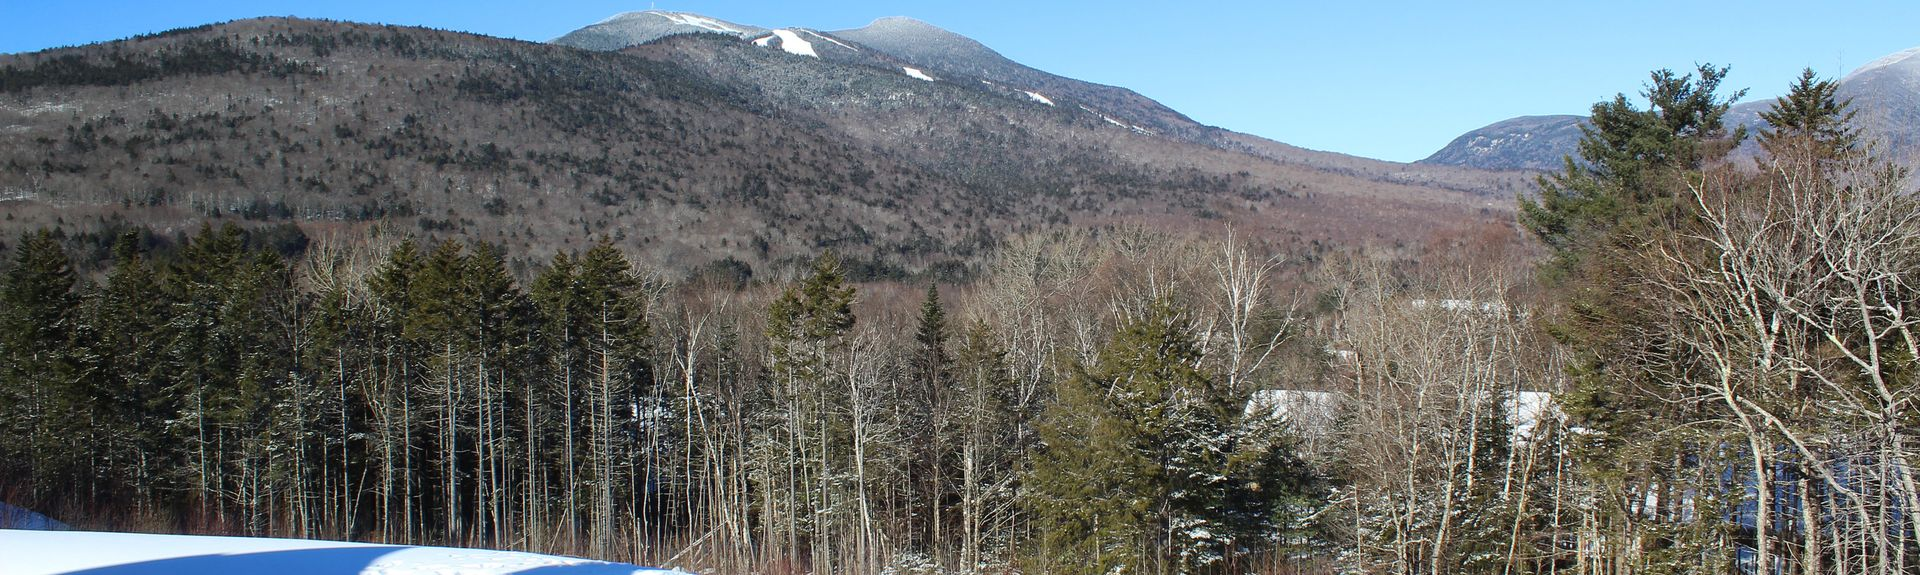 Cannon Mountain Aerial Tramway, Franconia, New Hampshire, United States of America